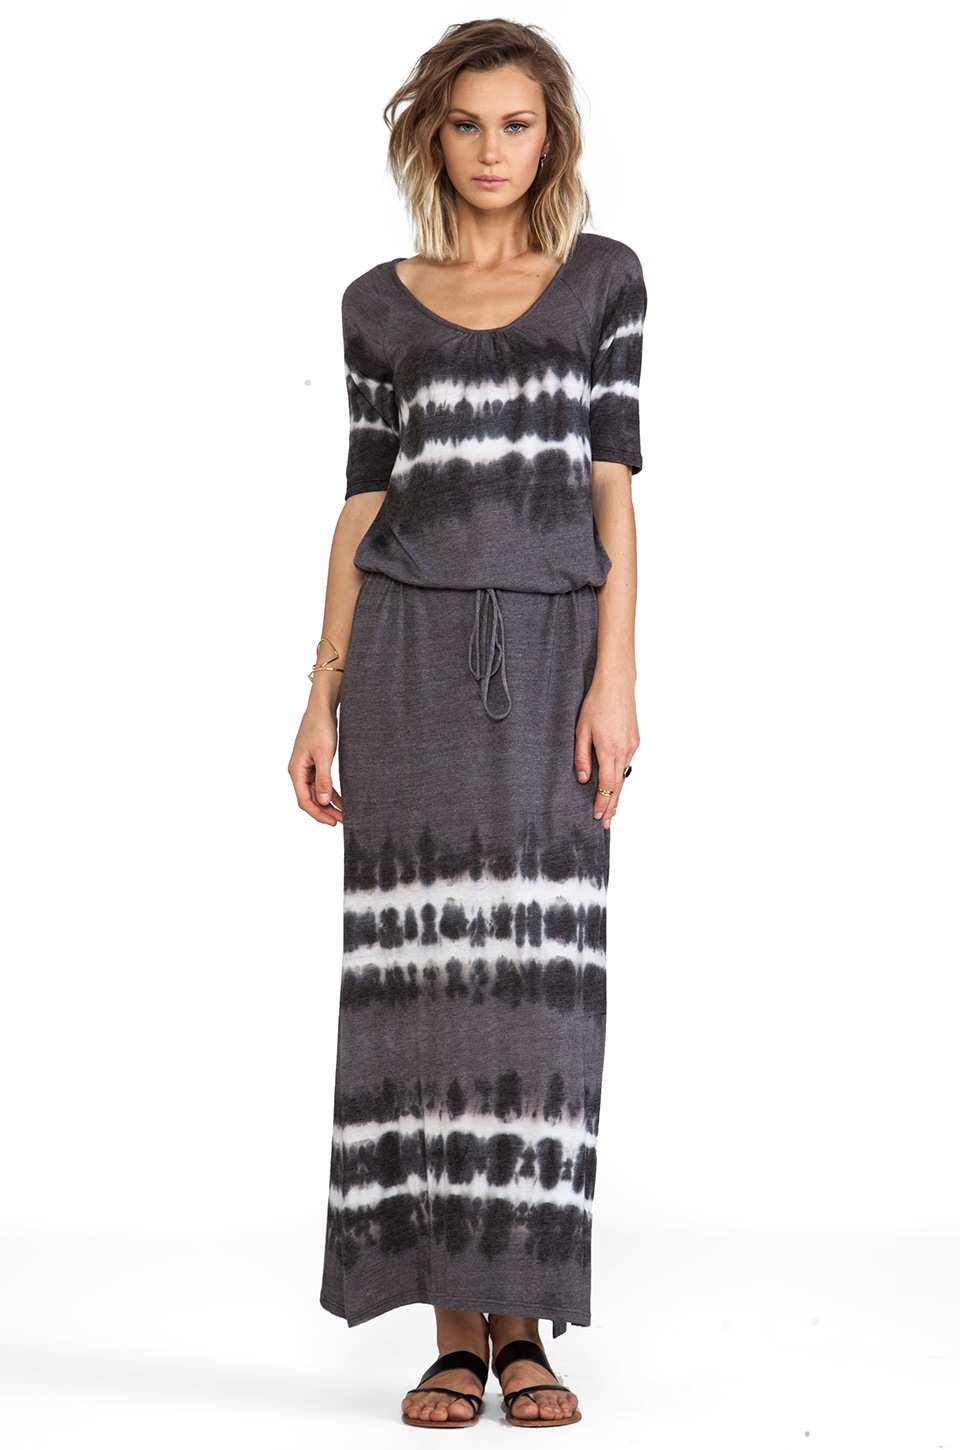 C&C California Elbow Sleeve Maxi Dress Tie Dye in Faded Black